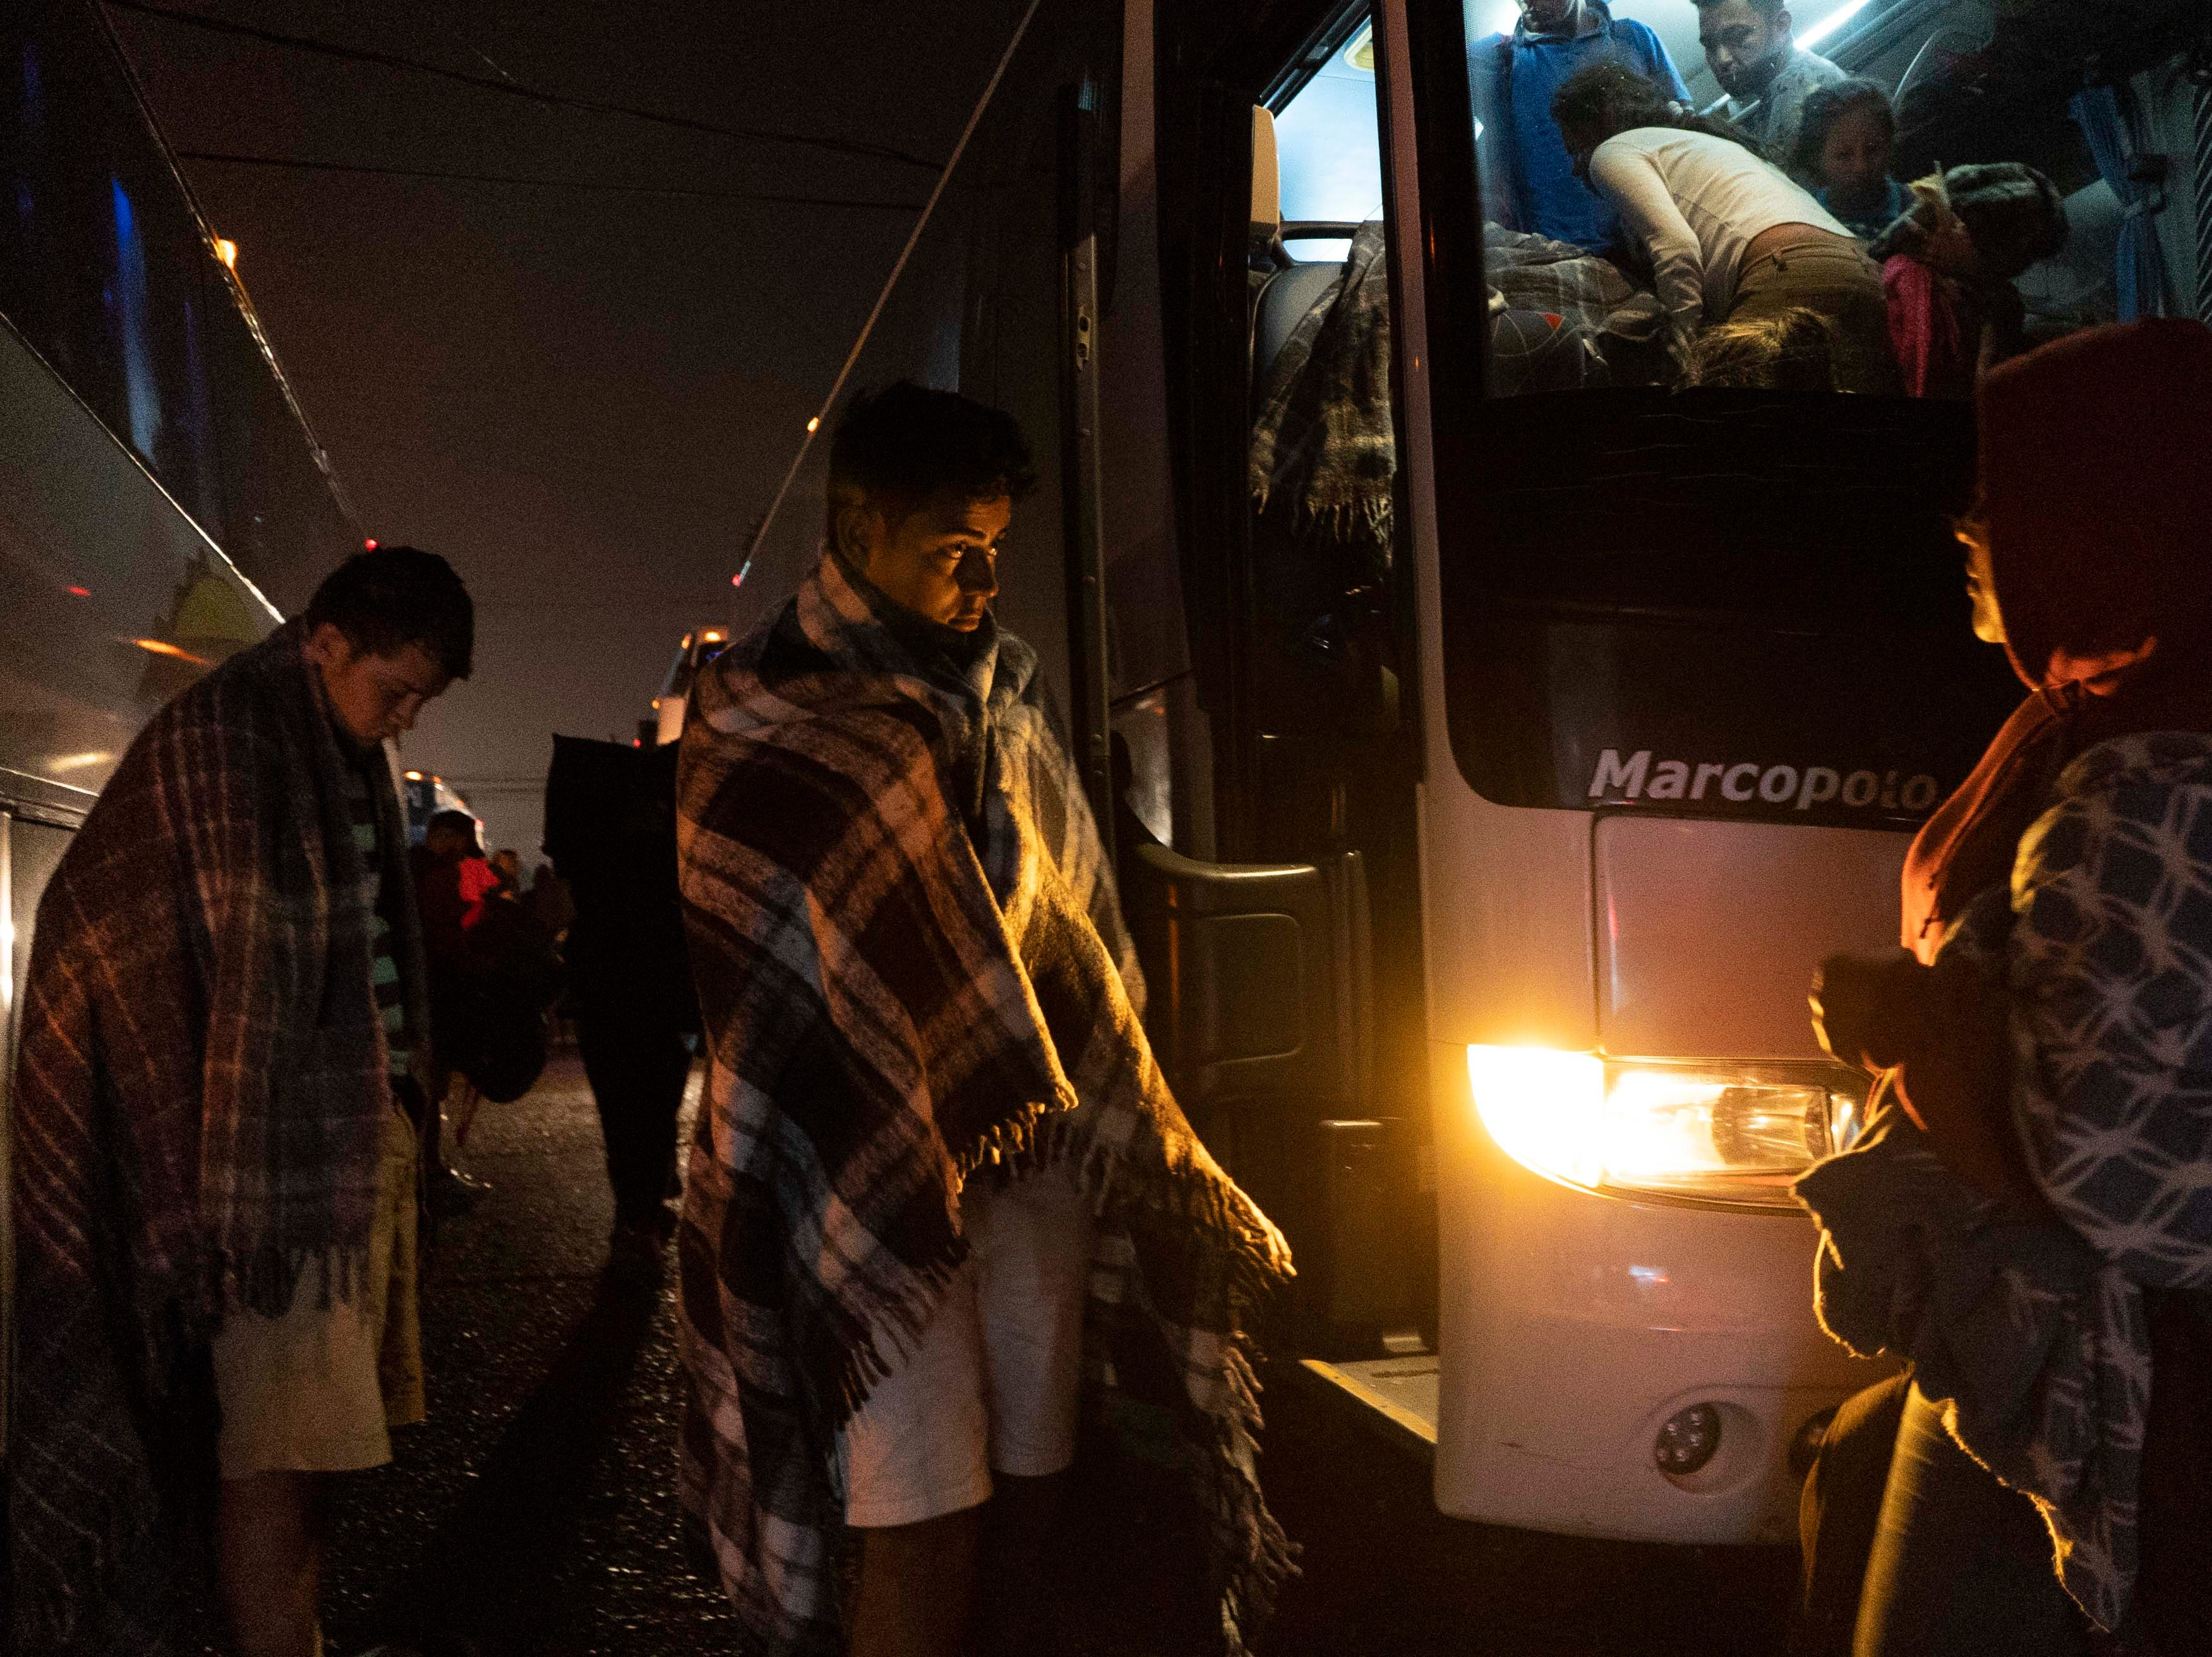 Several charter buses carrying migrants arrive at the Unidad Deportiva Benito Juarez sports complex in Tijuana, Mexico in the early morning hours on Nov. 21, 2018. The city of Tijuana is using the sports complex as a shelter for the migrants.